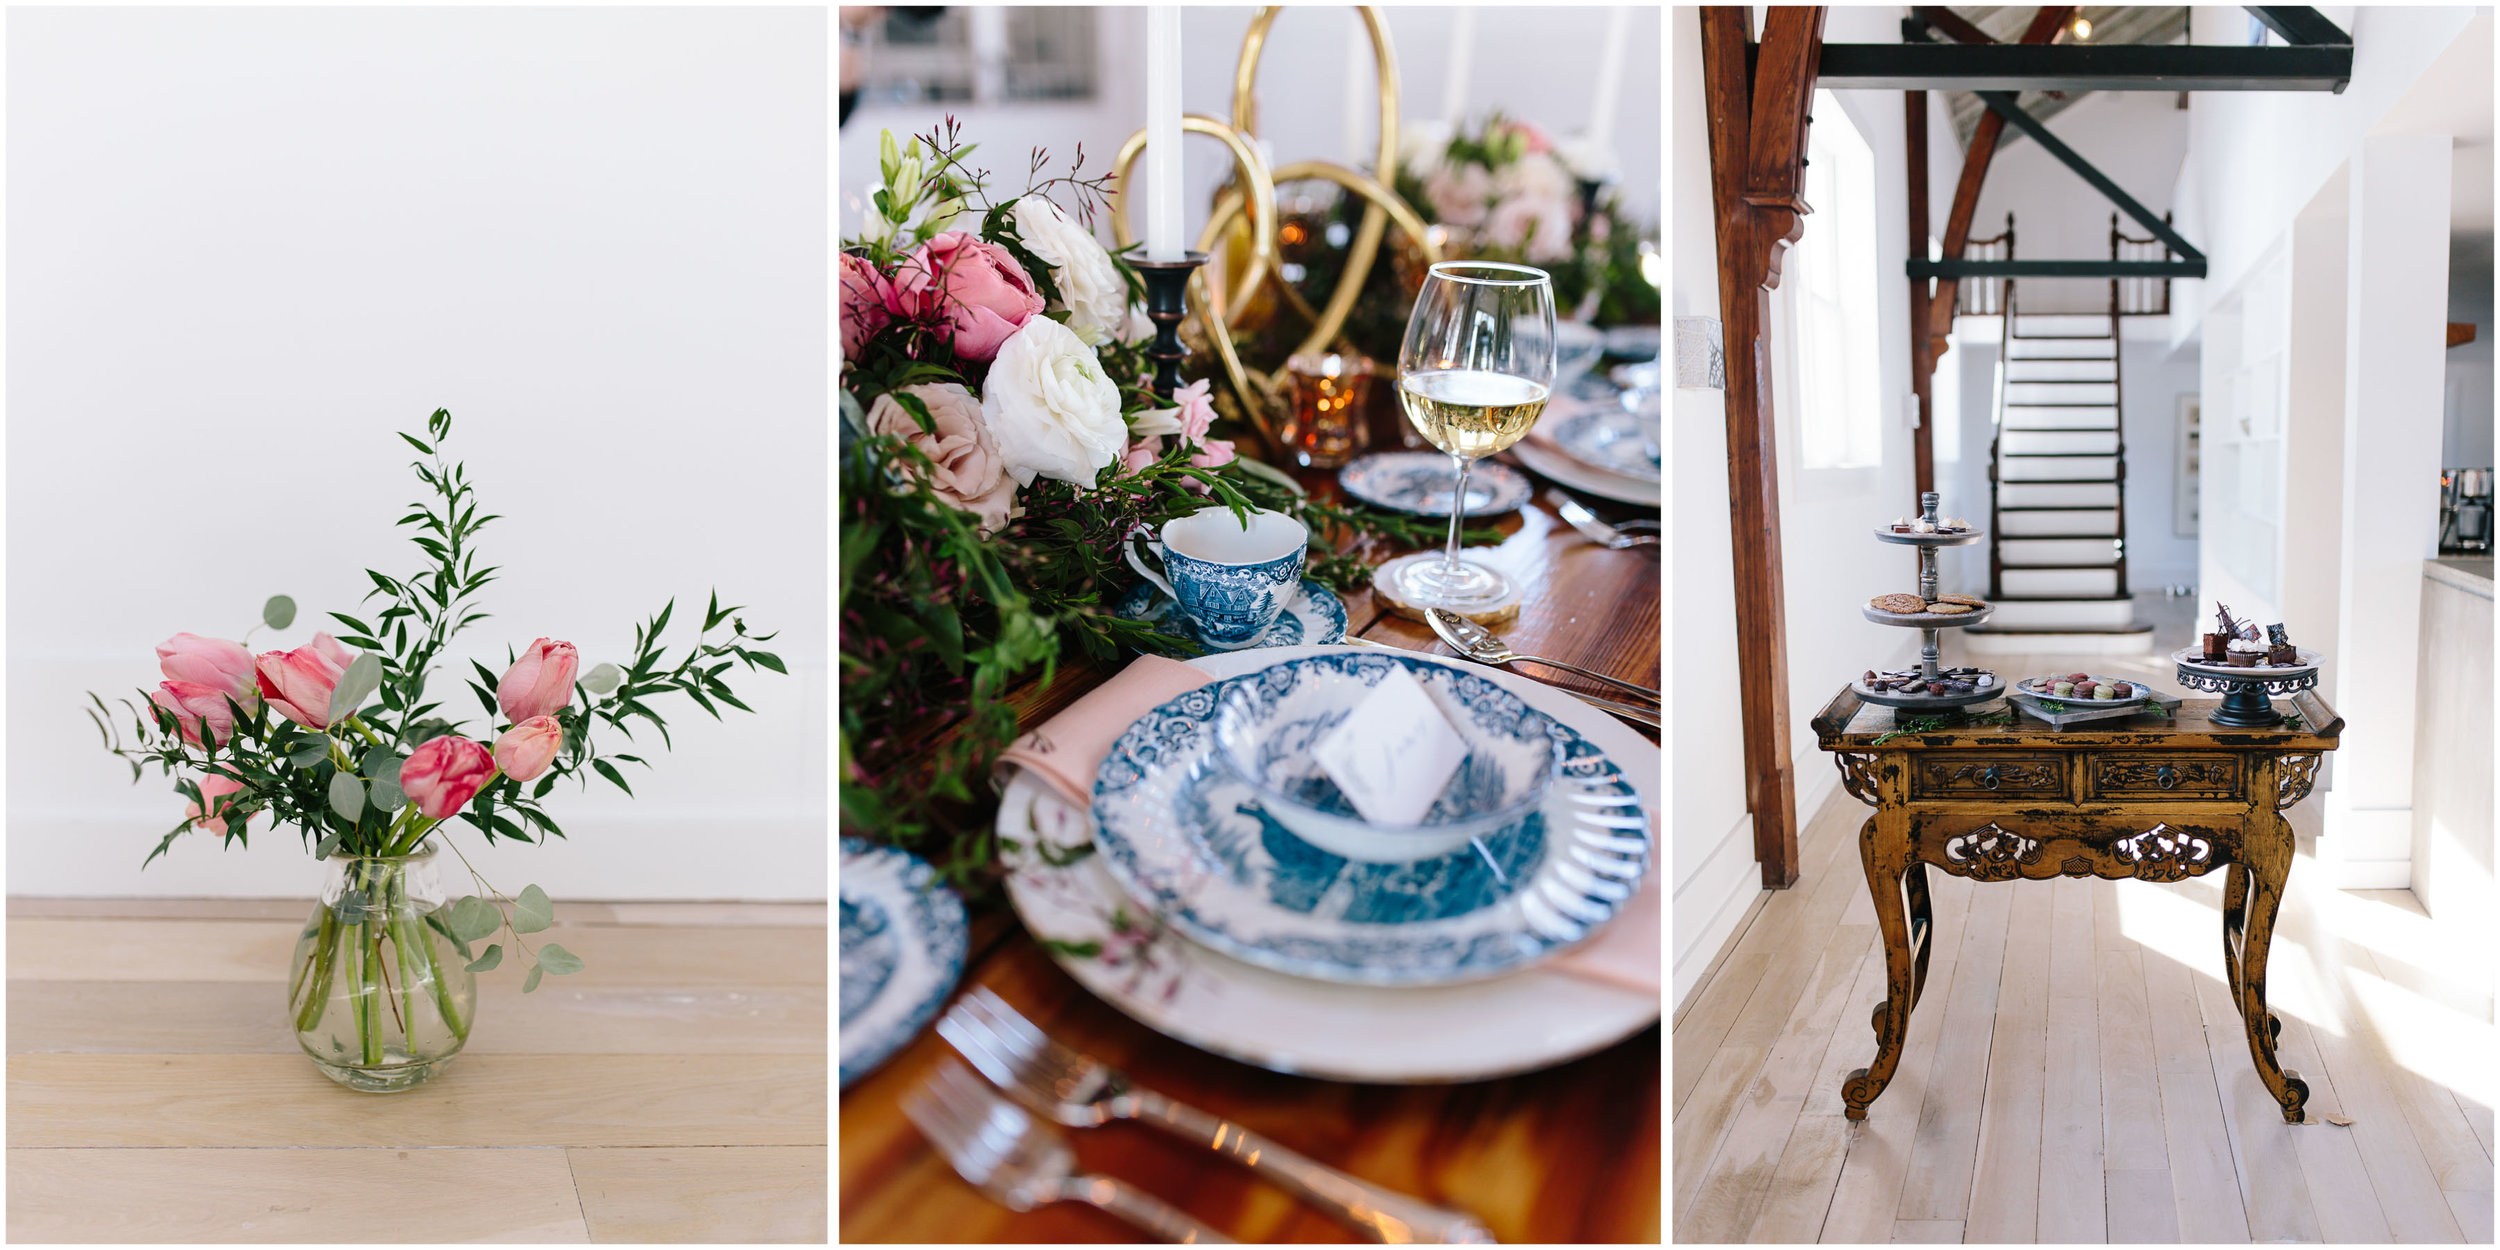 Intimate and romantic styled wedding photography in Lee, Massachusetts in the Berkshires - flowers, tablescape, and dessert